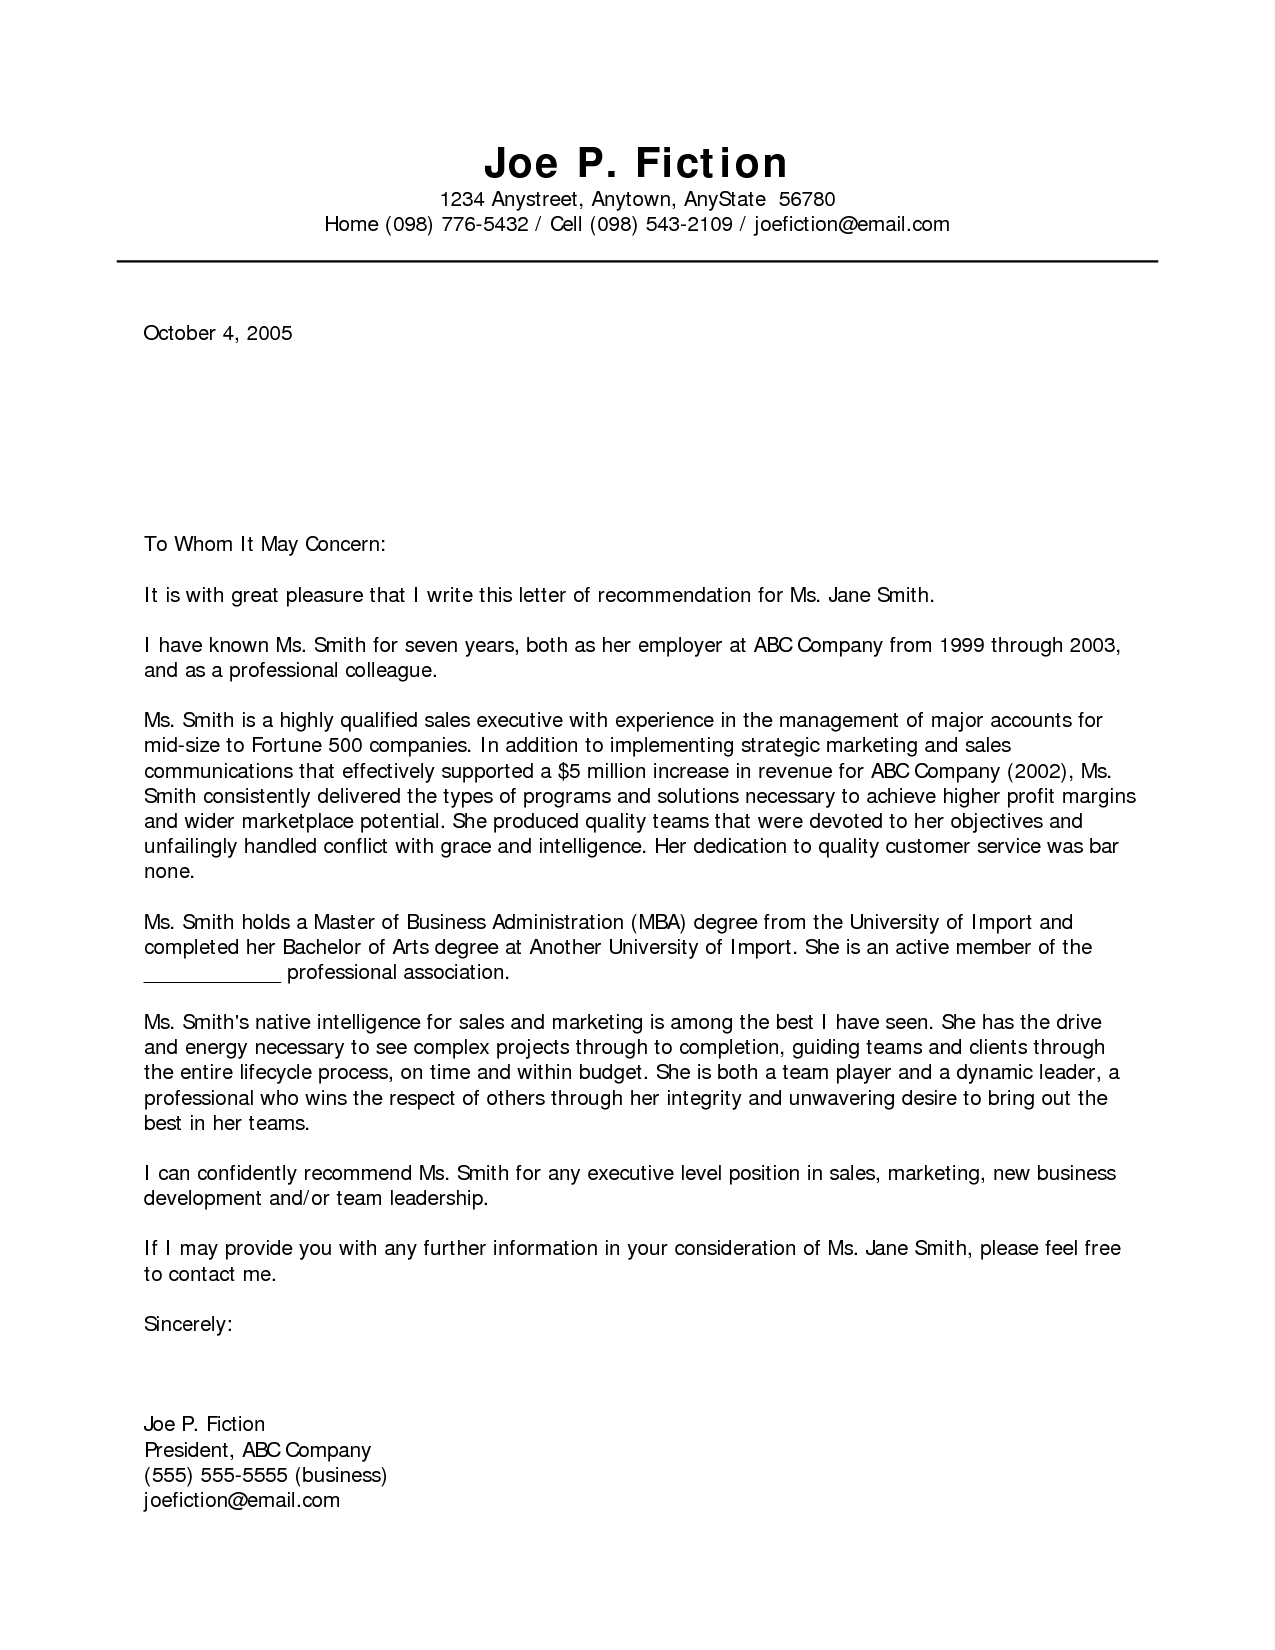 professional letter of recommendation template example-business re mendation letter template 4-p